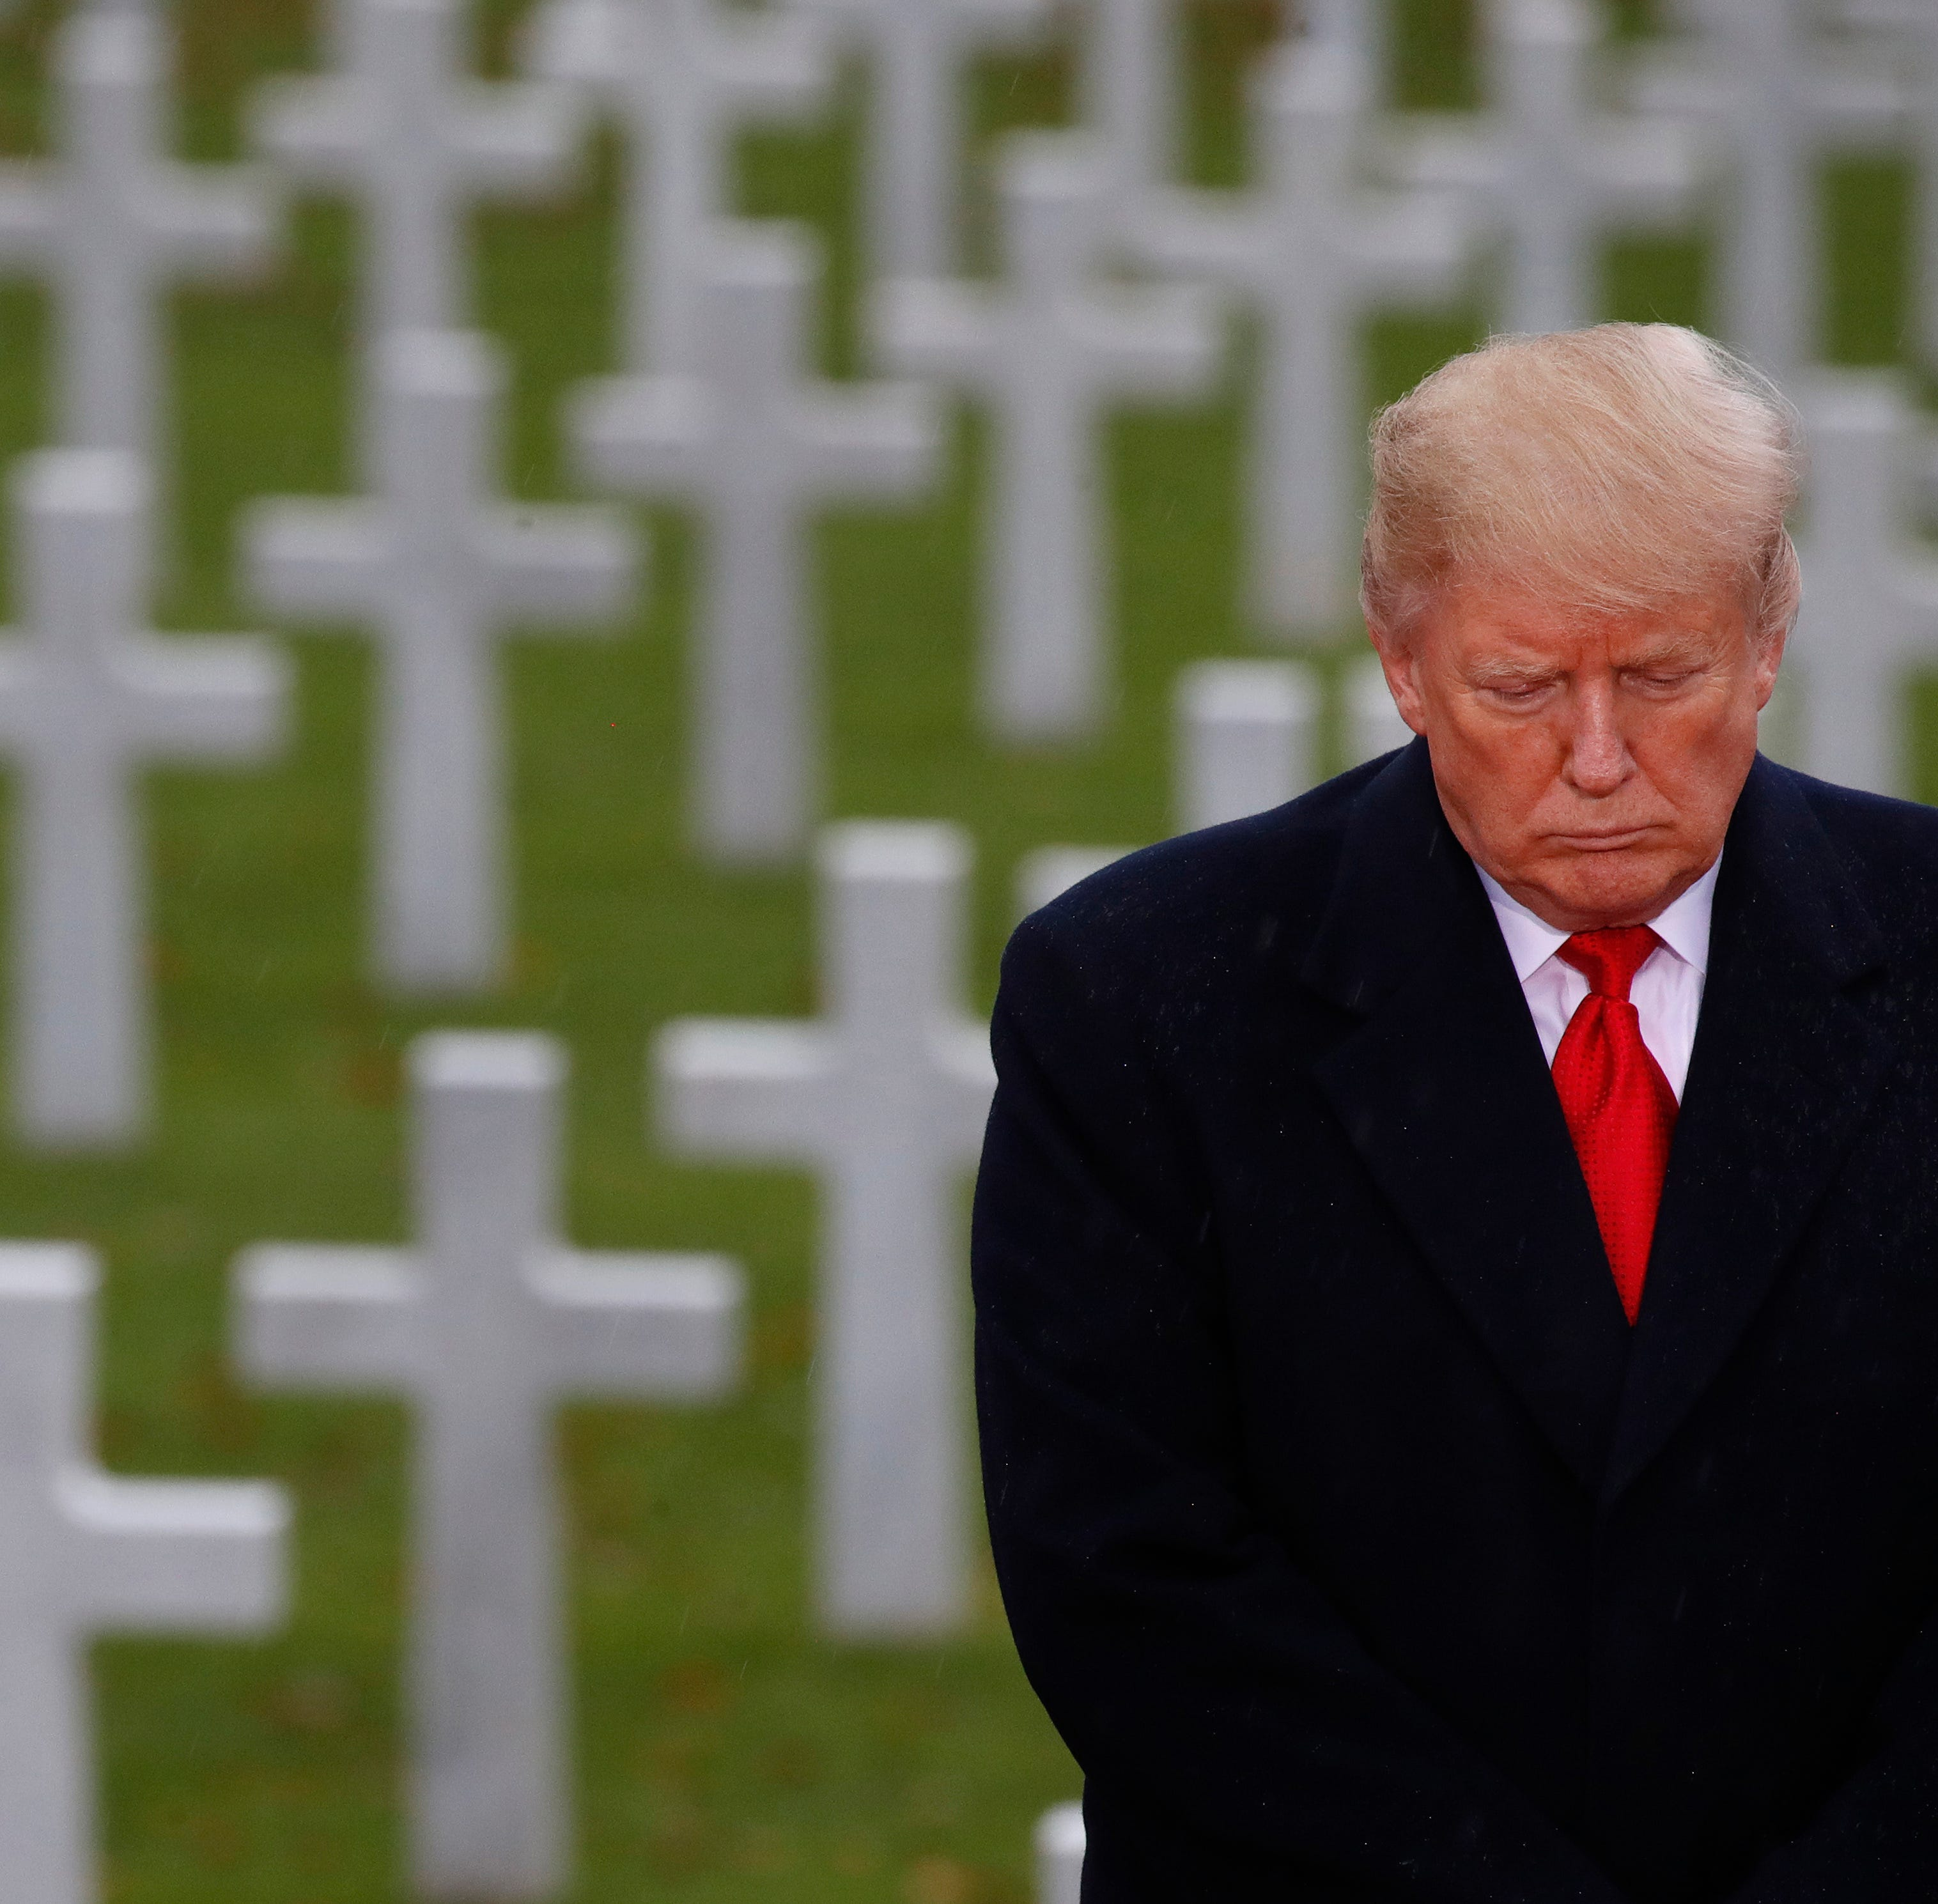 President Donald Trump stands in front of headstones at Suresnes American Cemetery near Paris.